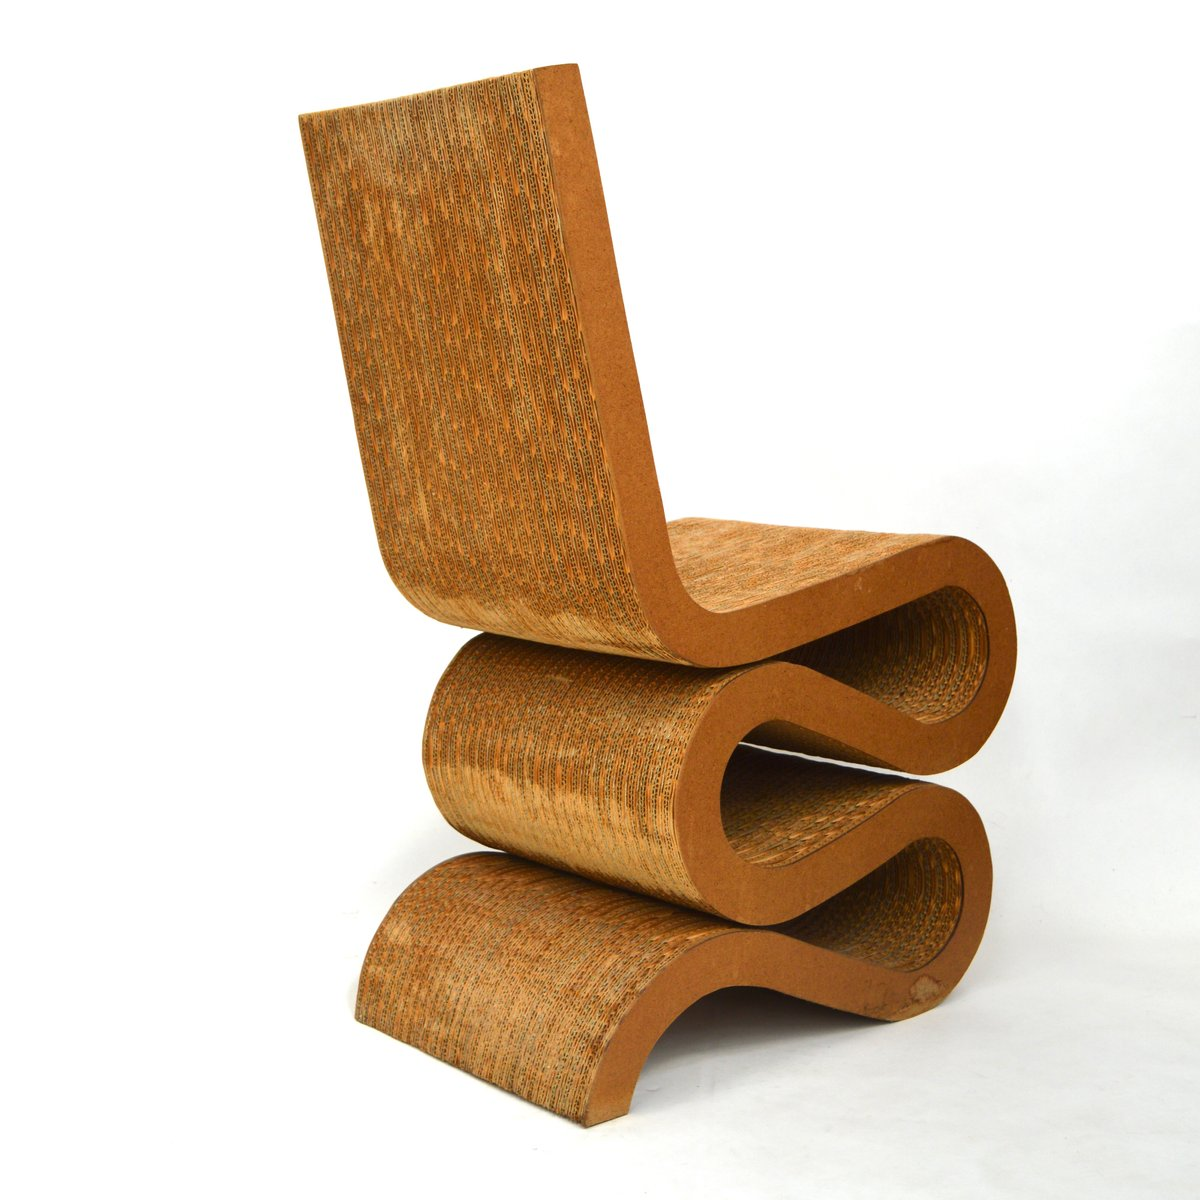 frank gehry chair colorful wooden kitchen chairs vintage wiggle by for vitra sale at pamono price 1 805 00 regular 2 694